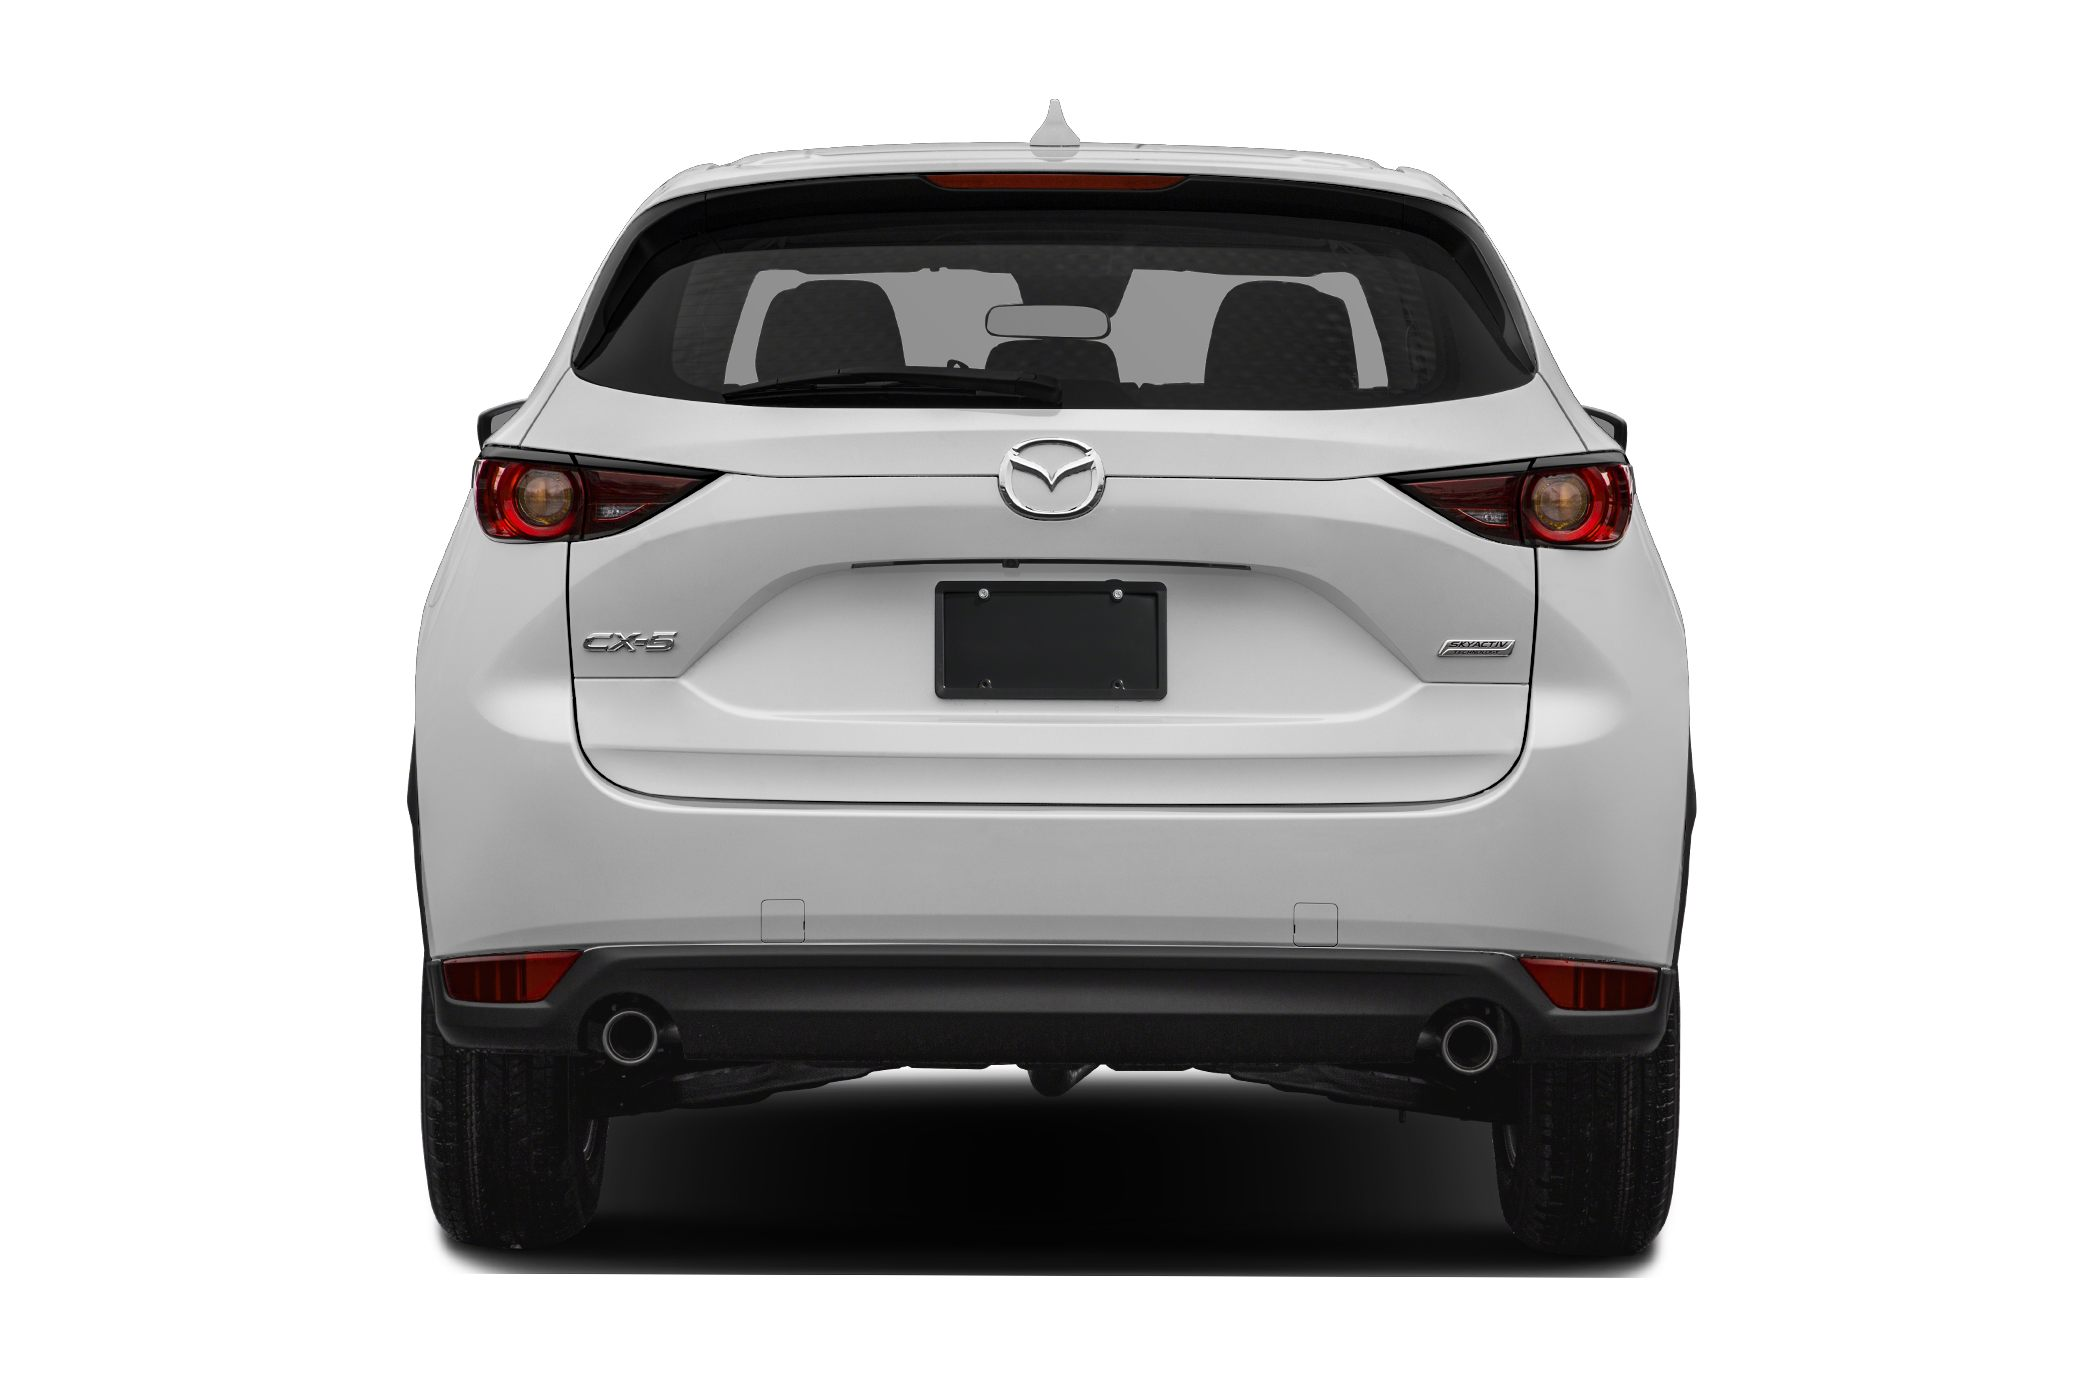 2018 Mazda CX-5 Specs, Safety Rating & MPG - CarsDirect